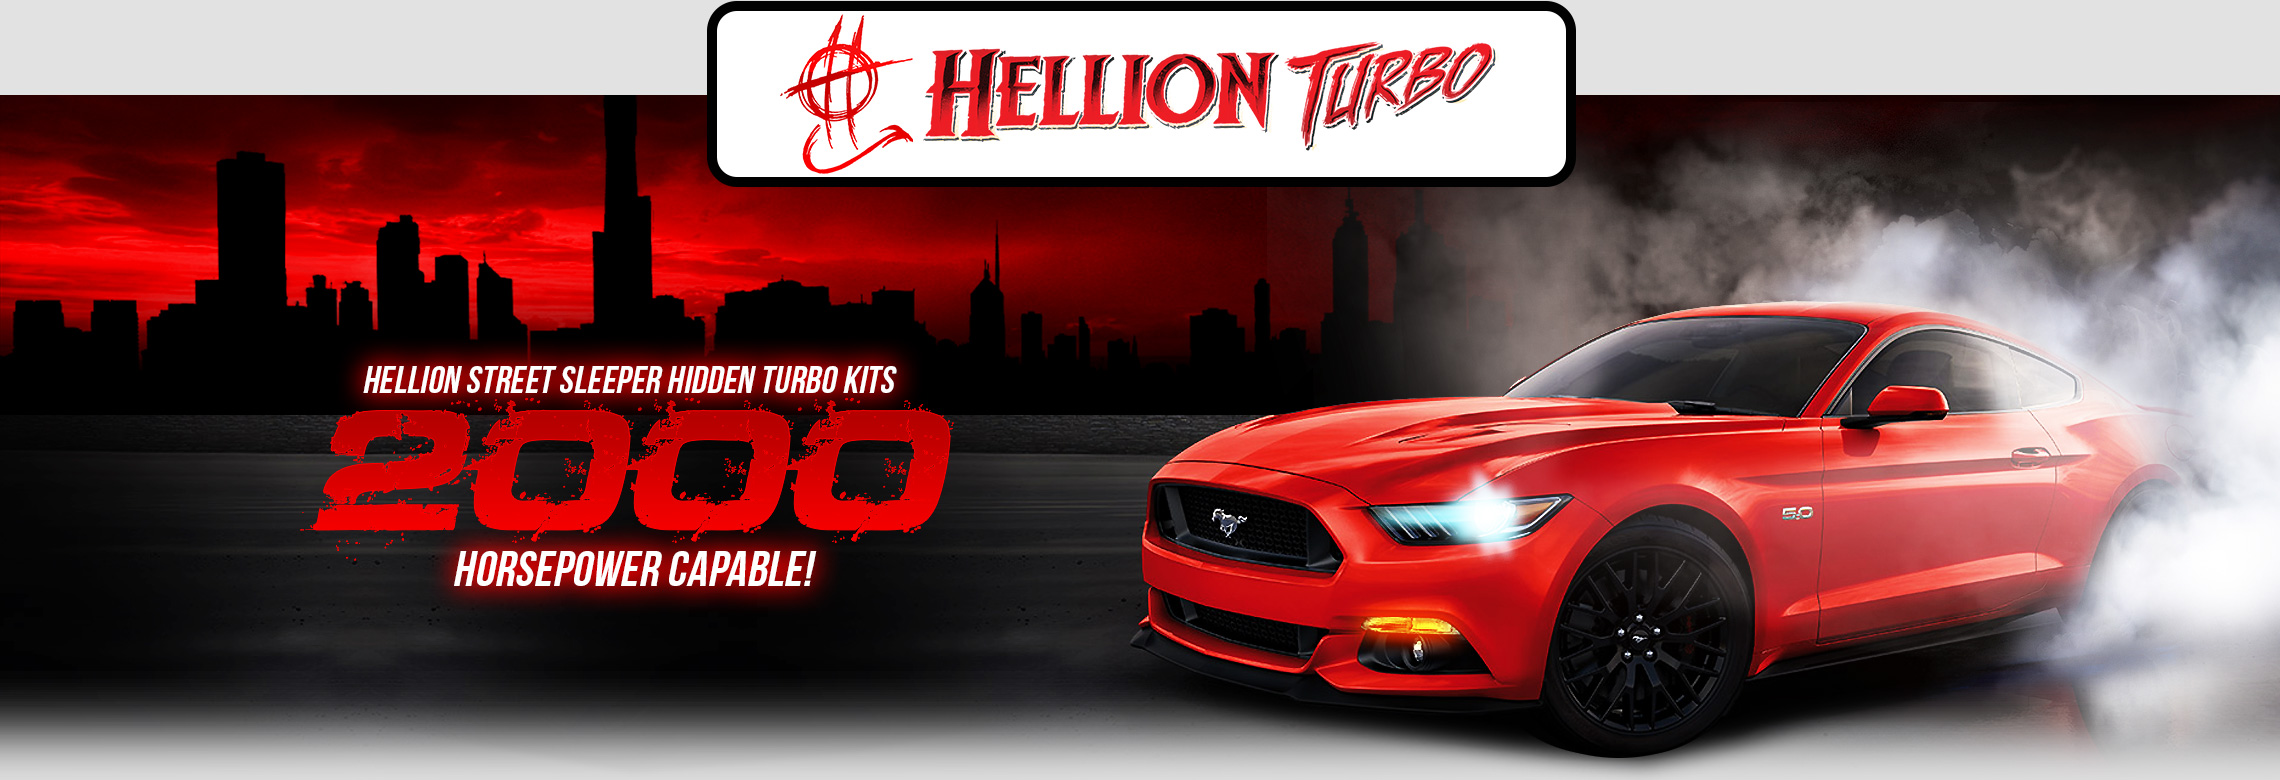 Mustang Hellion Turbo Systems in Australia